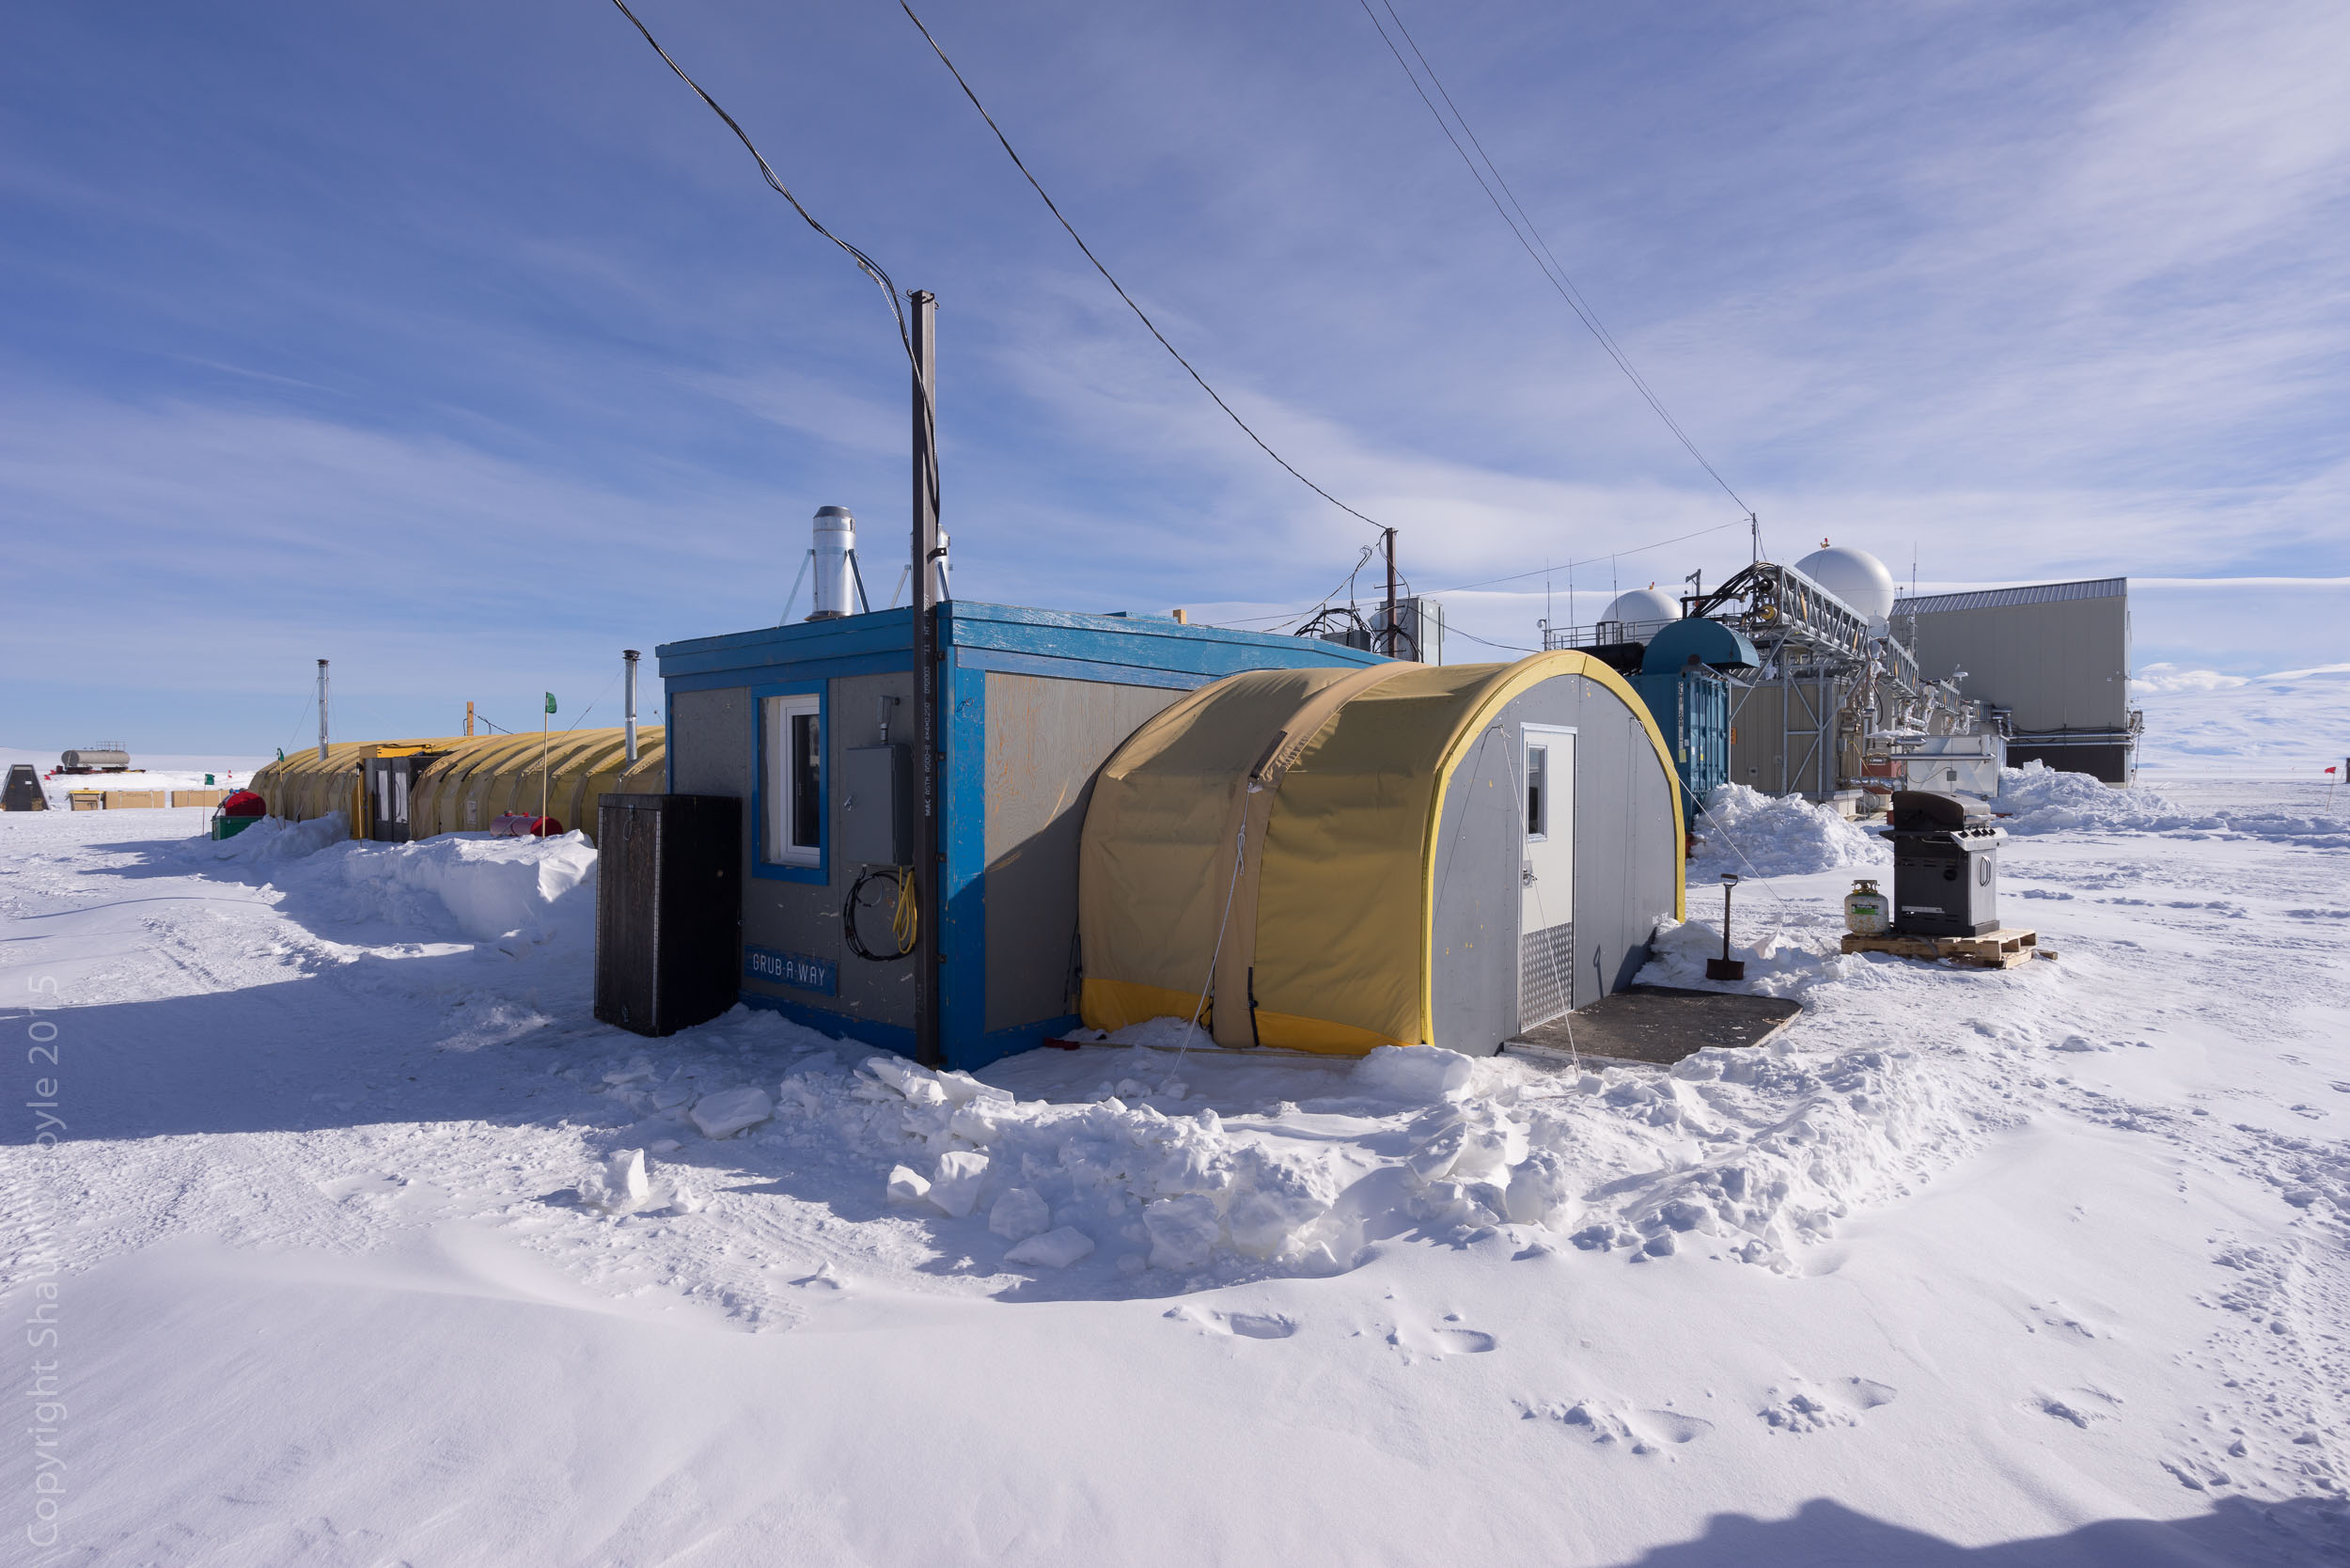 LDB galley and office space for NASA and other personnel. Unlike other field camps in Antarctica, LDB is close enough to McMurdo Station for personal to commute to the site each day.